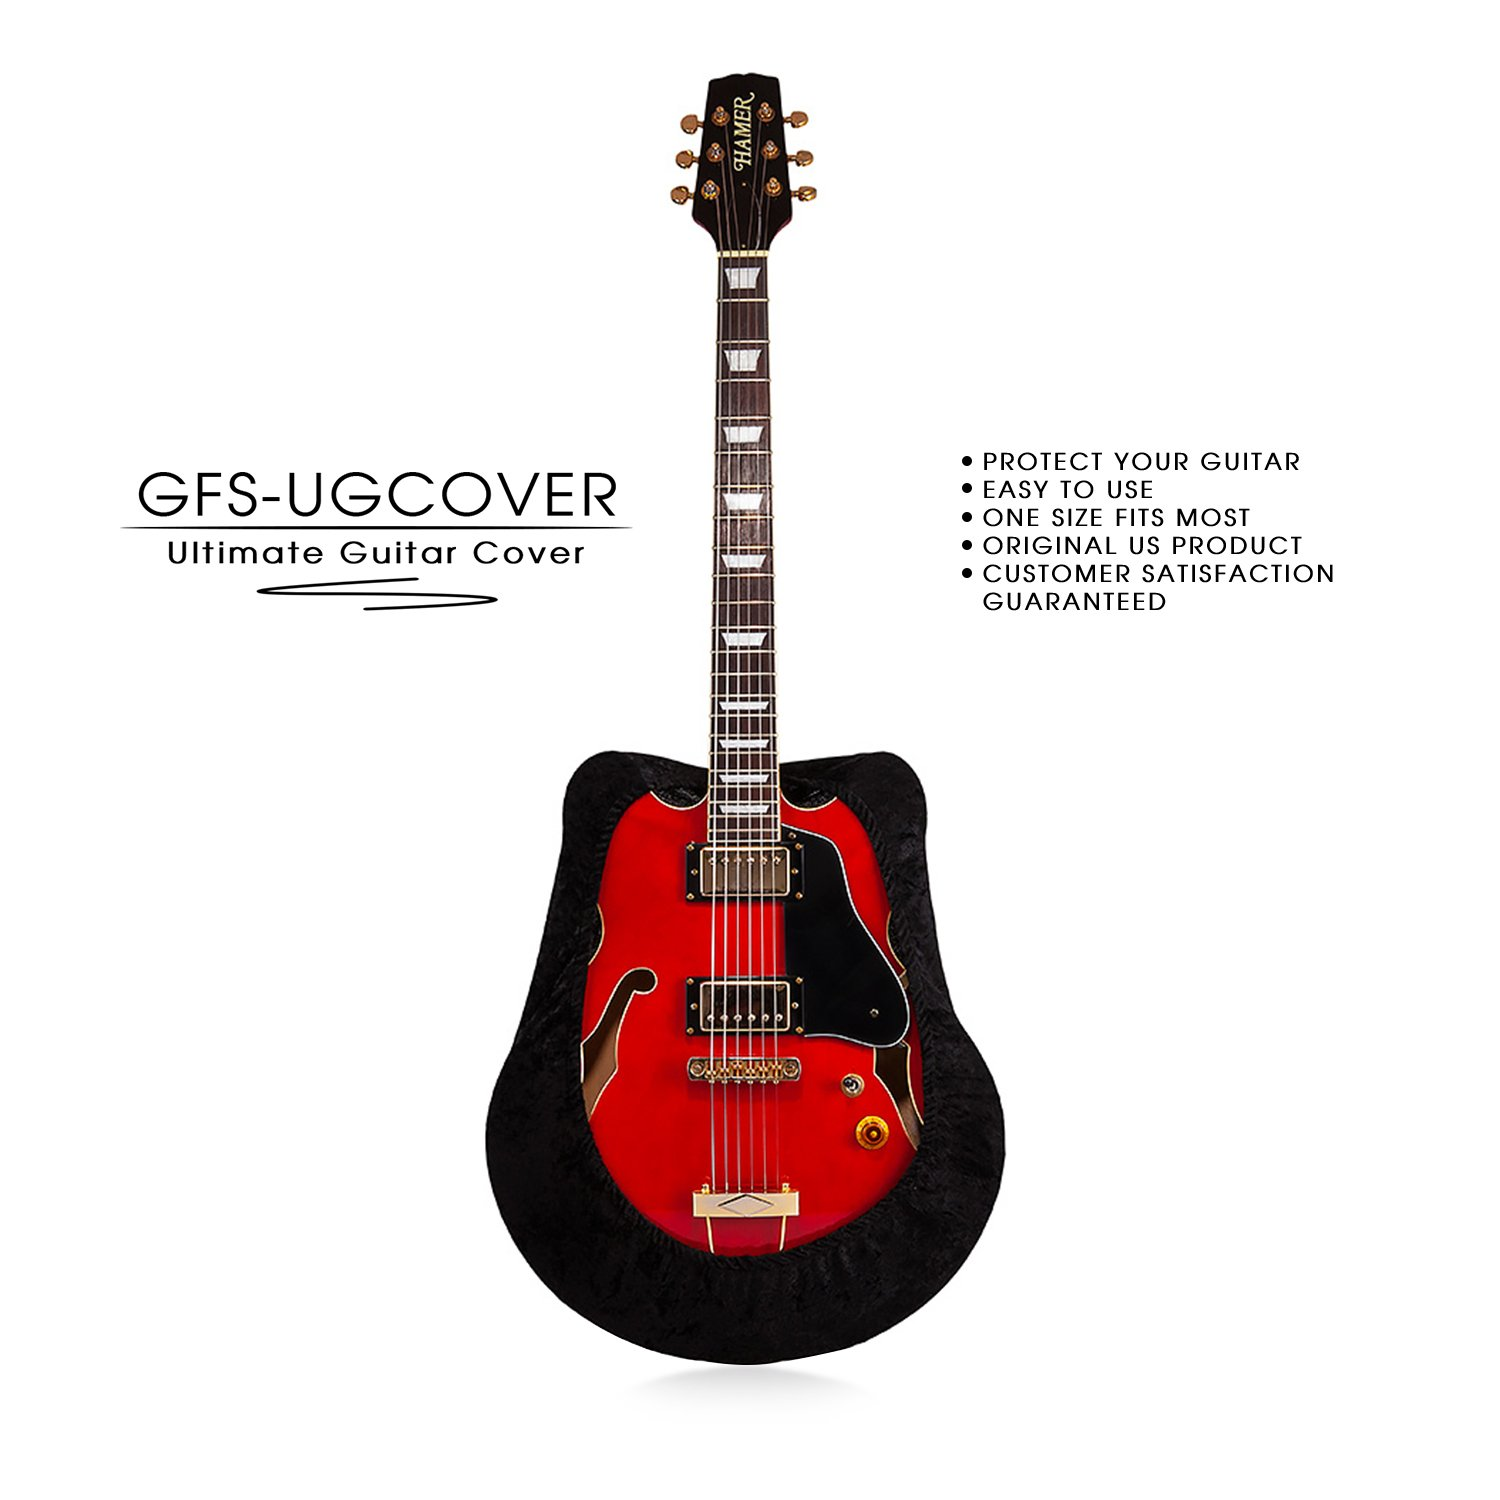 tenor gfs ugcover ultimate guitar cover guitar